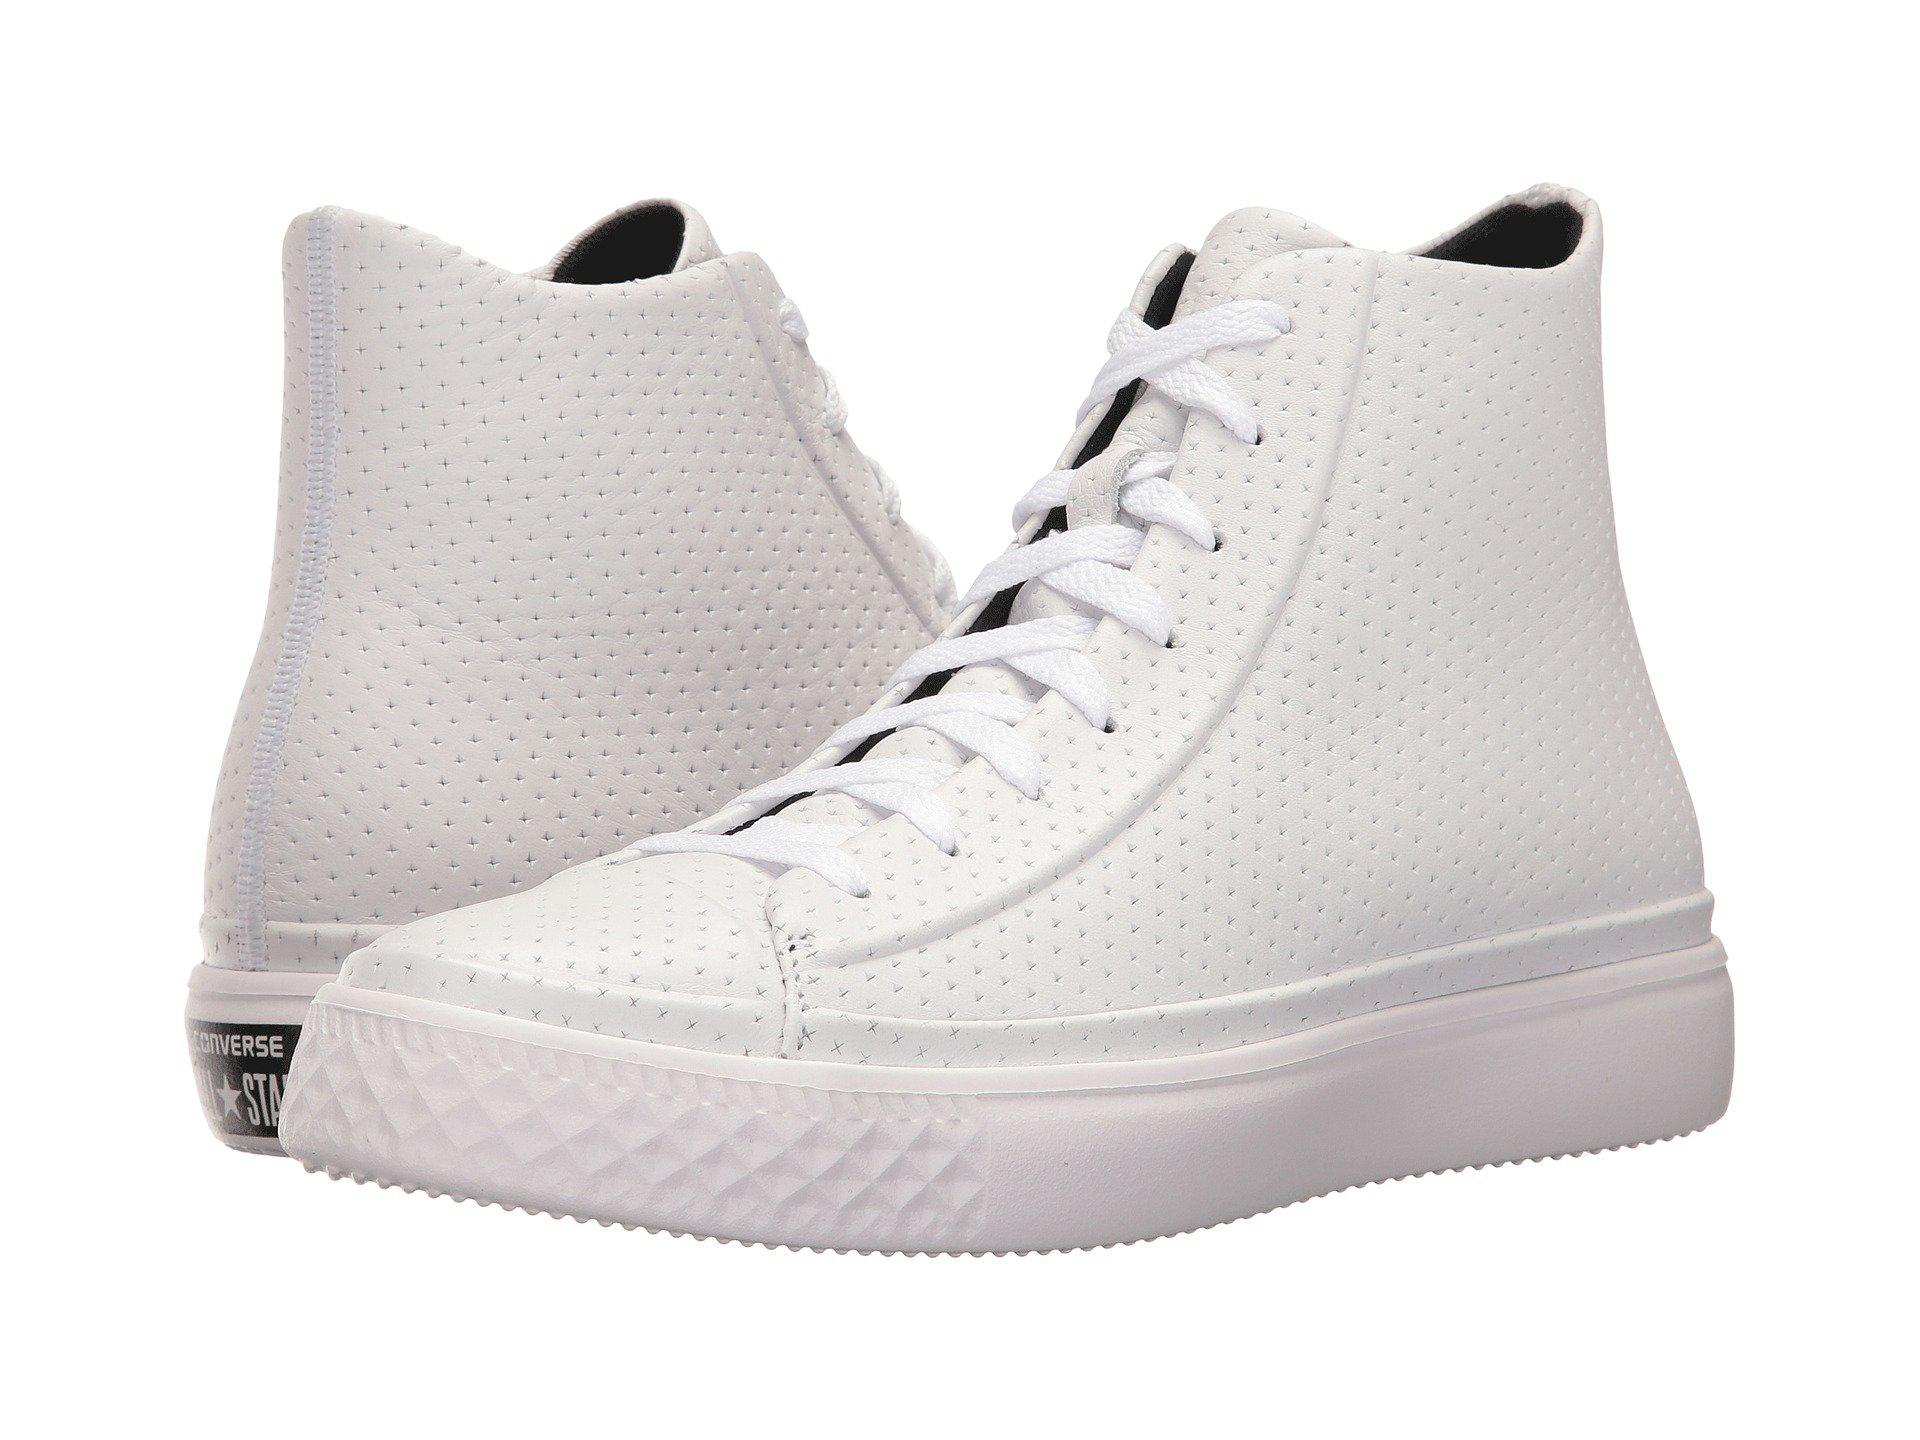 00c980d0100 Lyst - Converse Chuck Taylor All Star Modern Perforated Leather in White